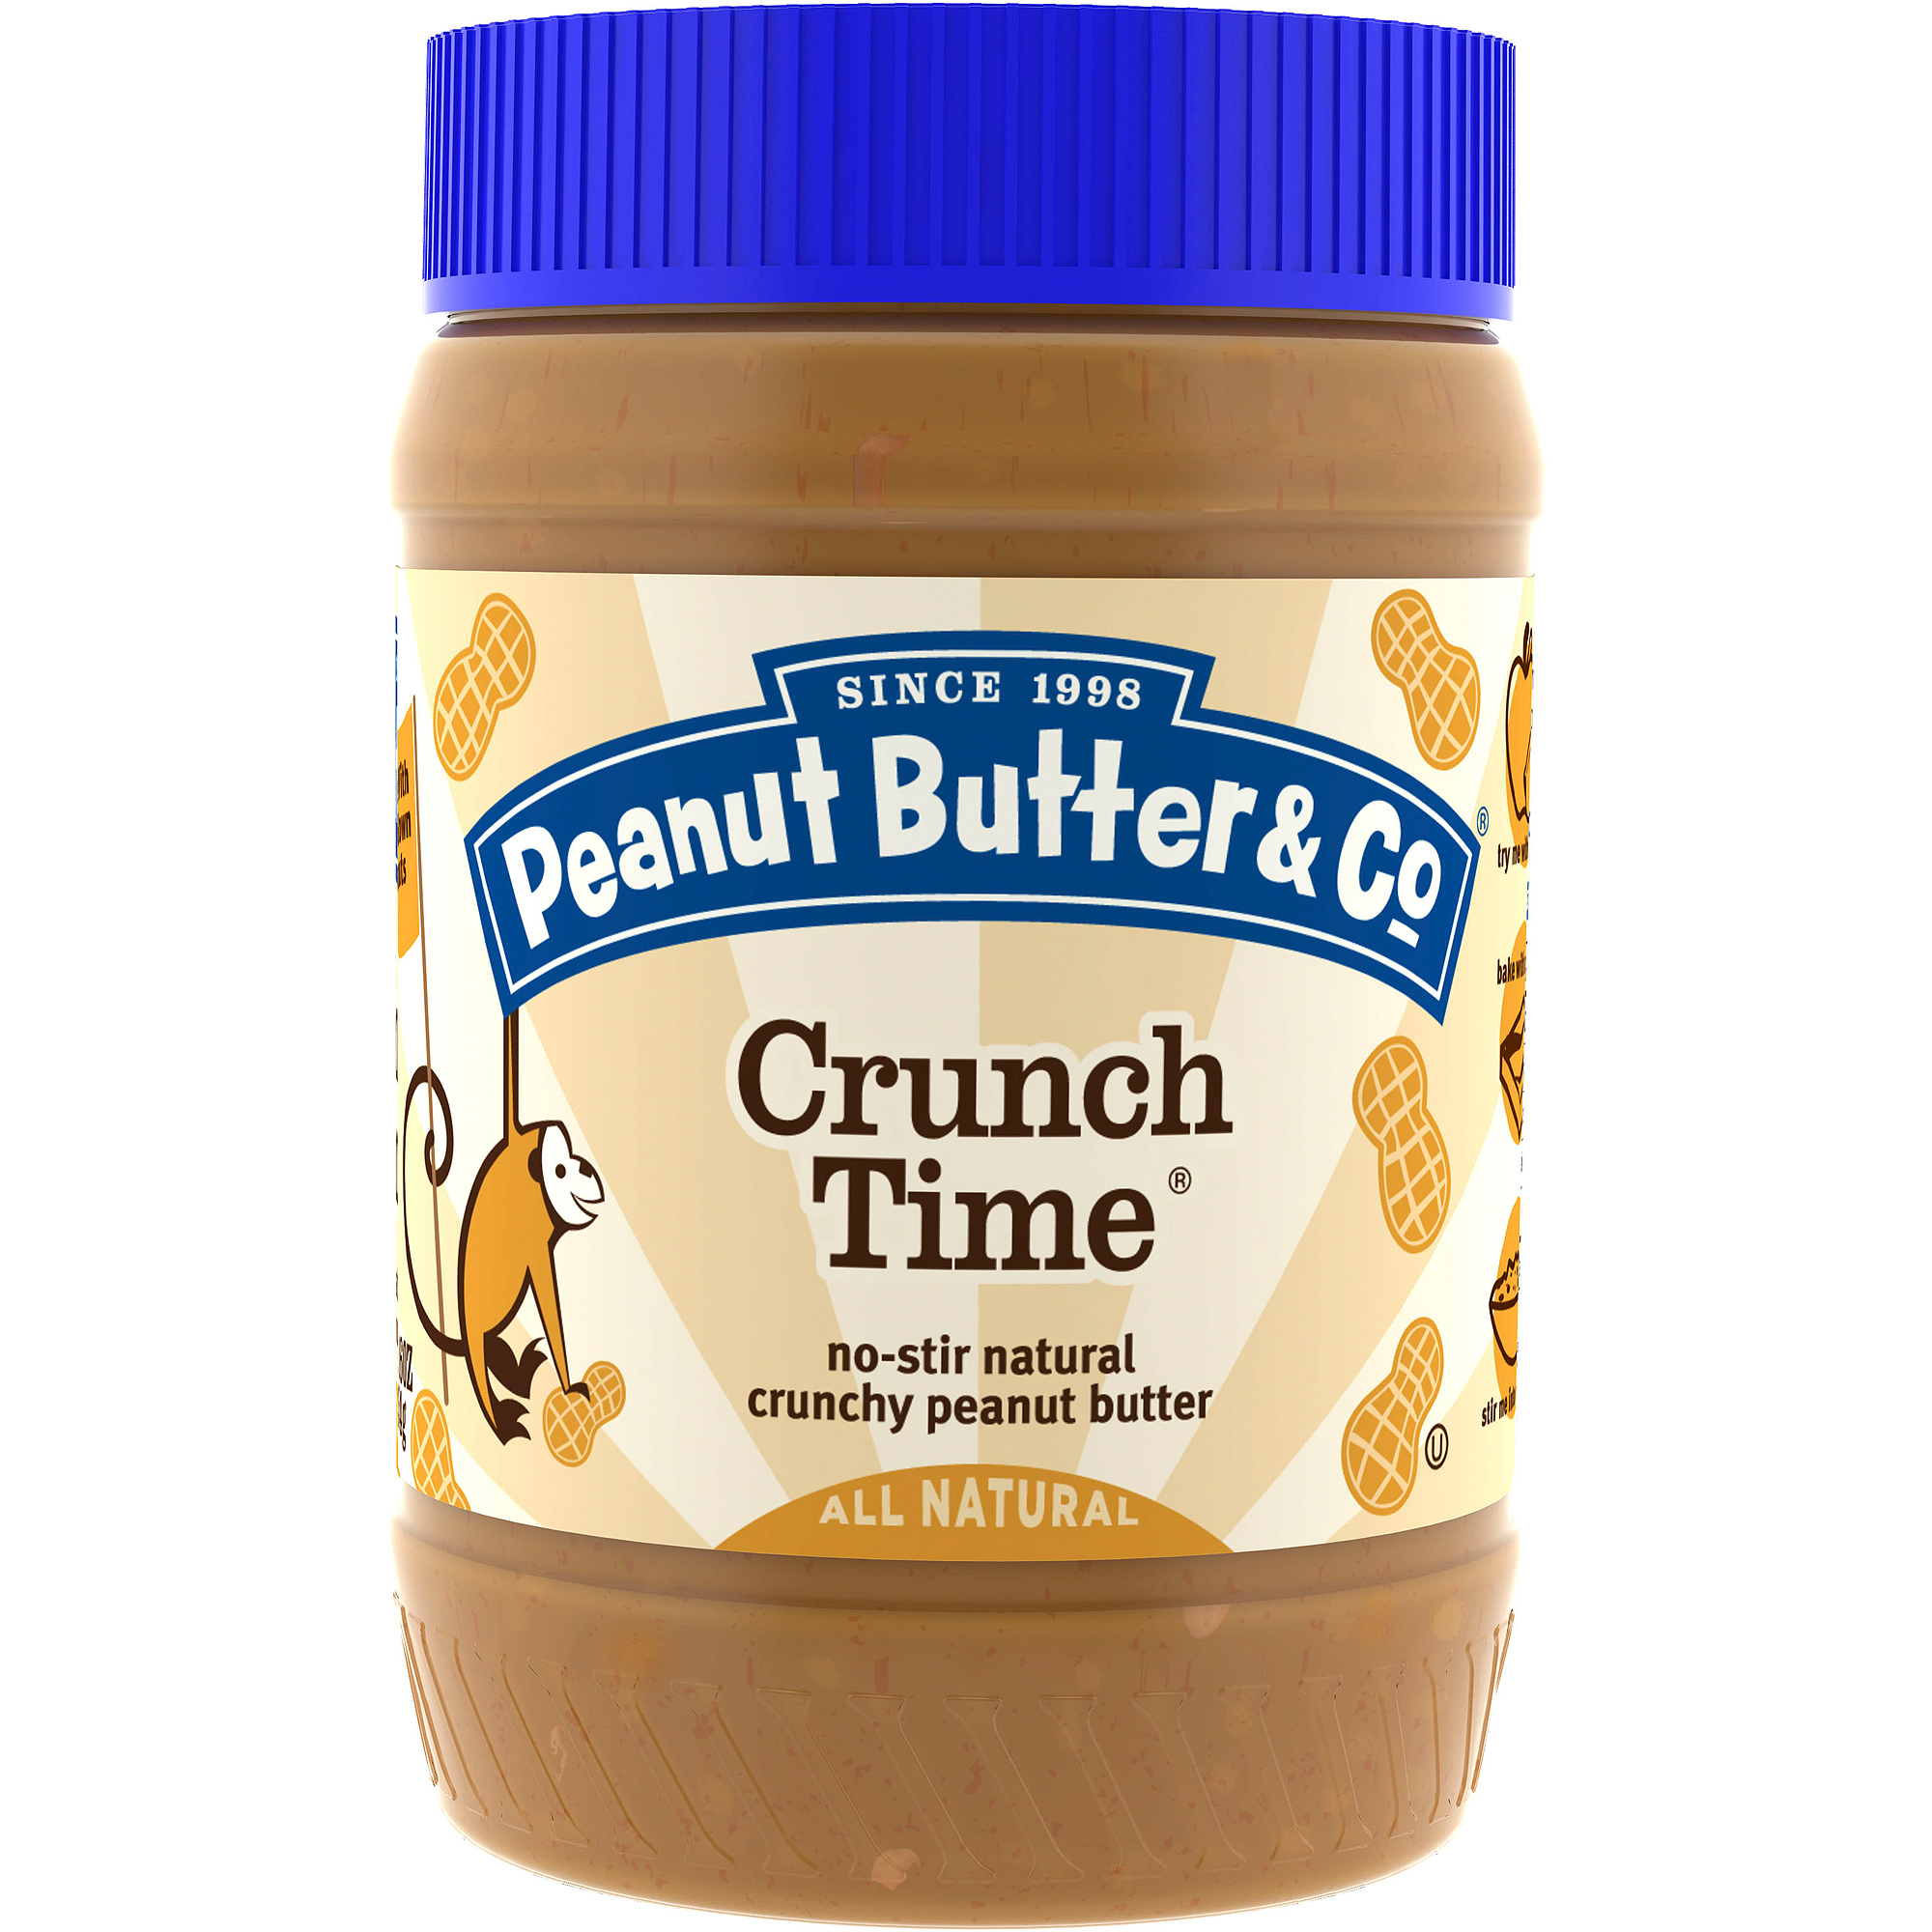 Peanut Butter & Co. Crunch Time Peanut Butter, 16 oz  (Pack of 6)